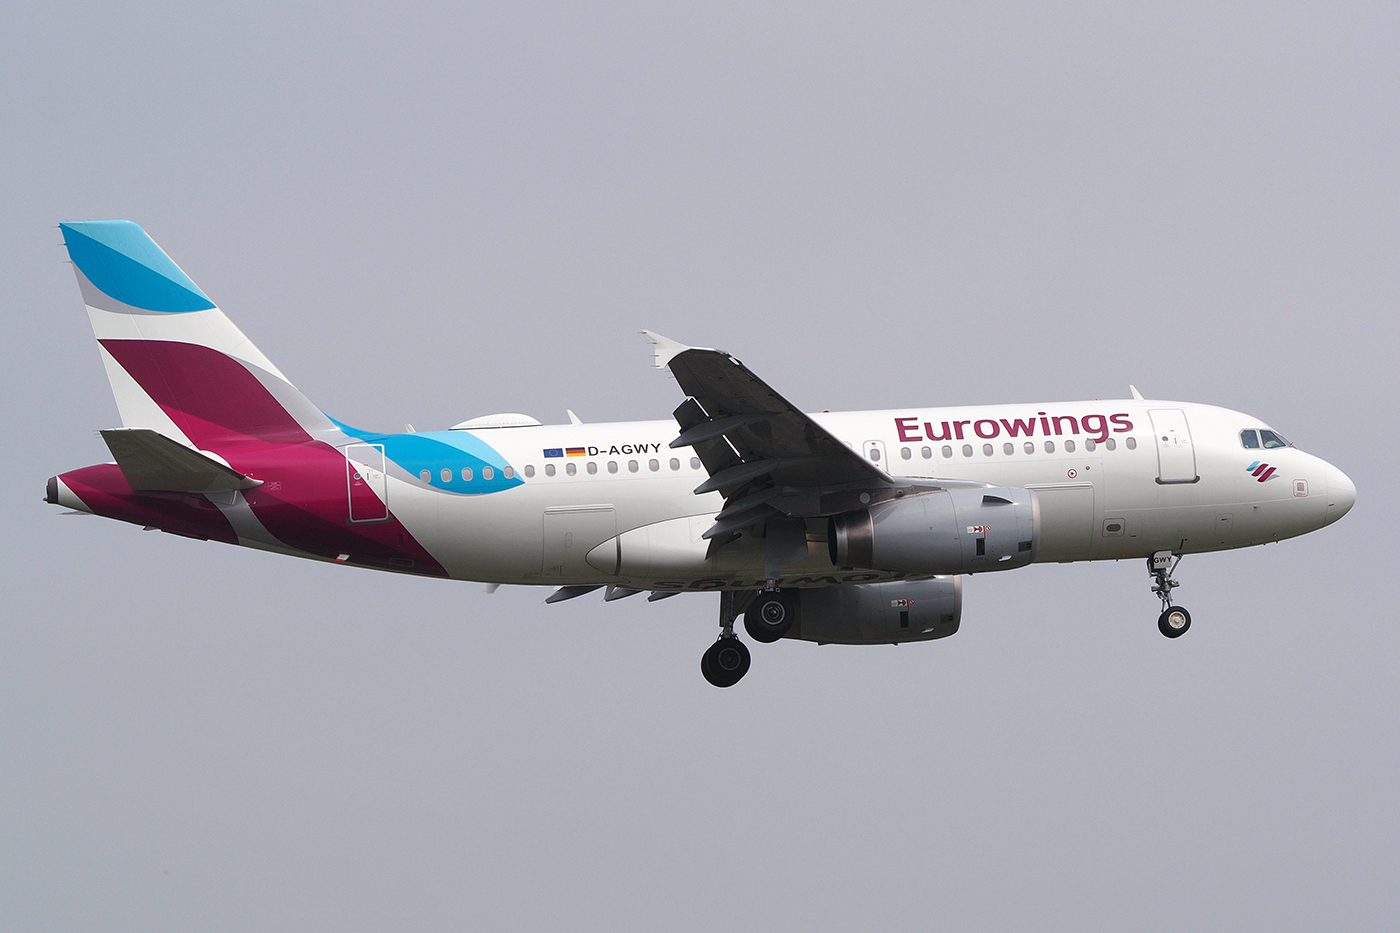 D-AGWY, Eurowings, A319